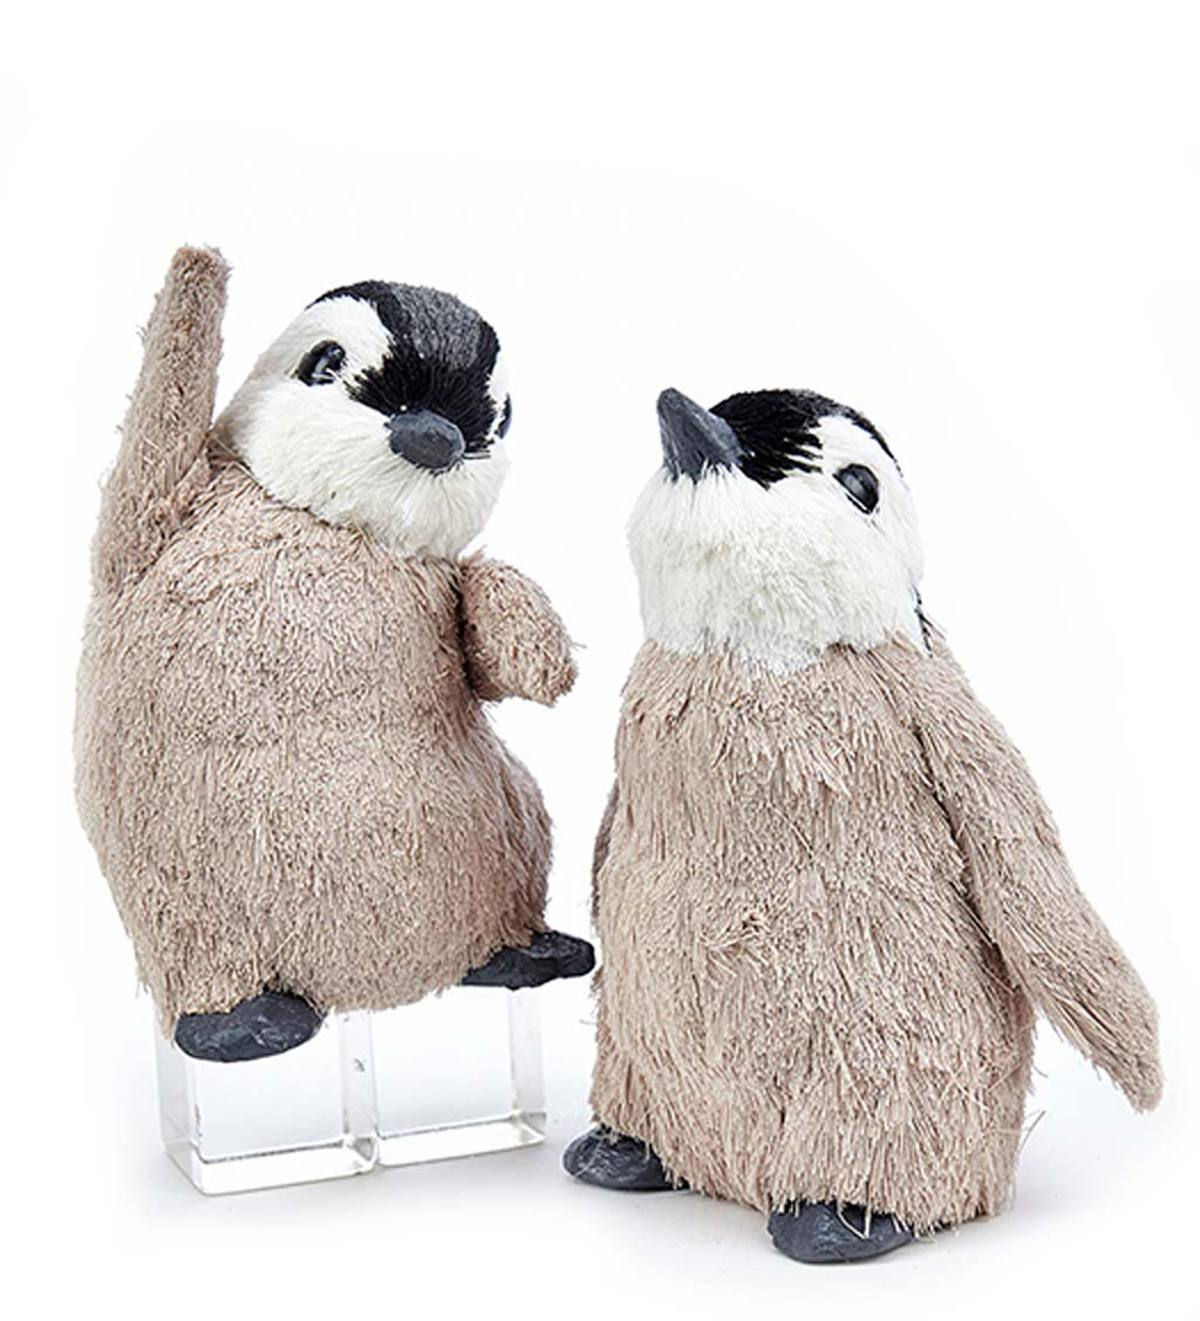 Fuzzy Penguin Ornaments, Set of 2